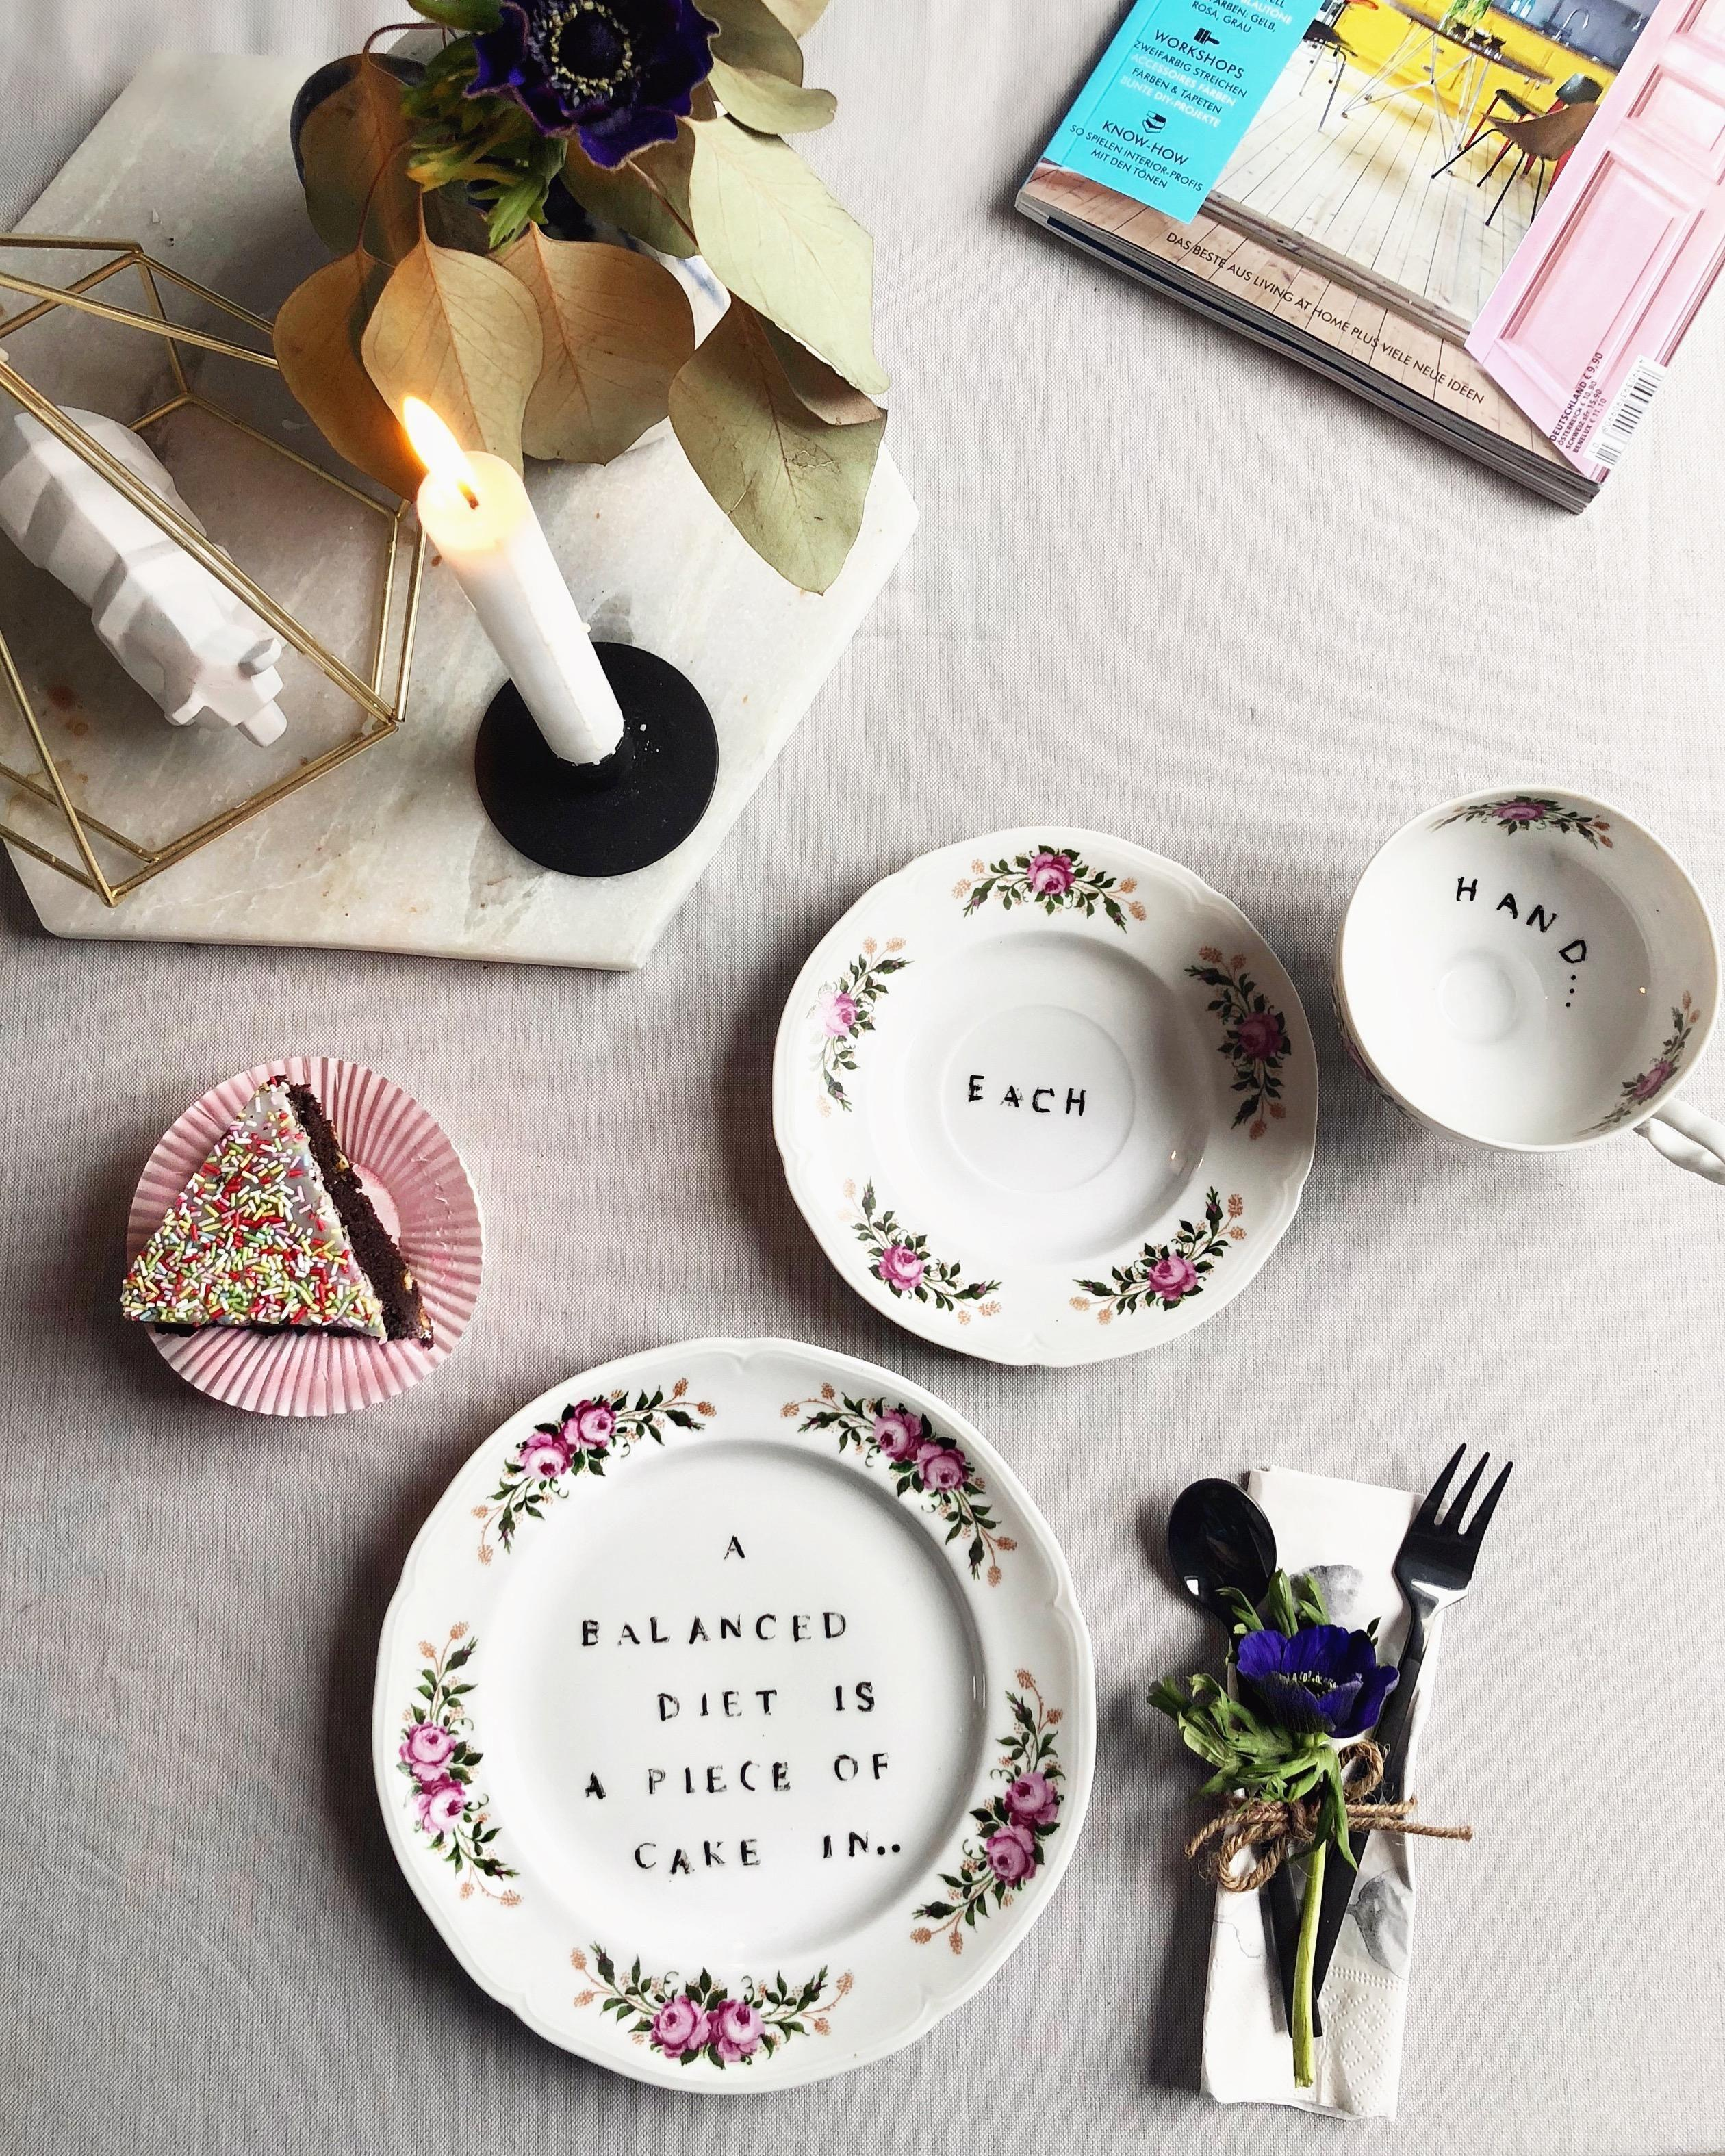 #diy #diylover #plates #vintageplates #quotes #coffee #coffeetime